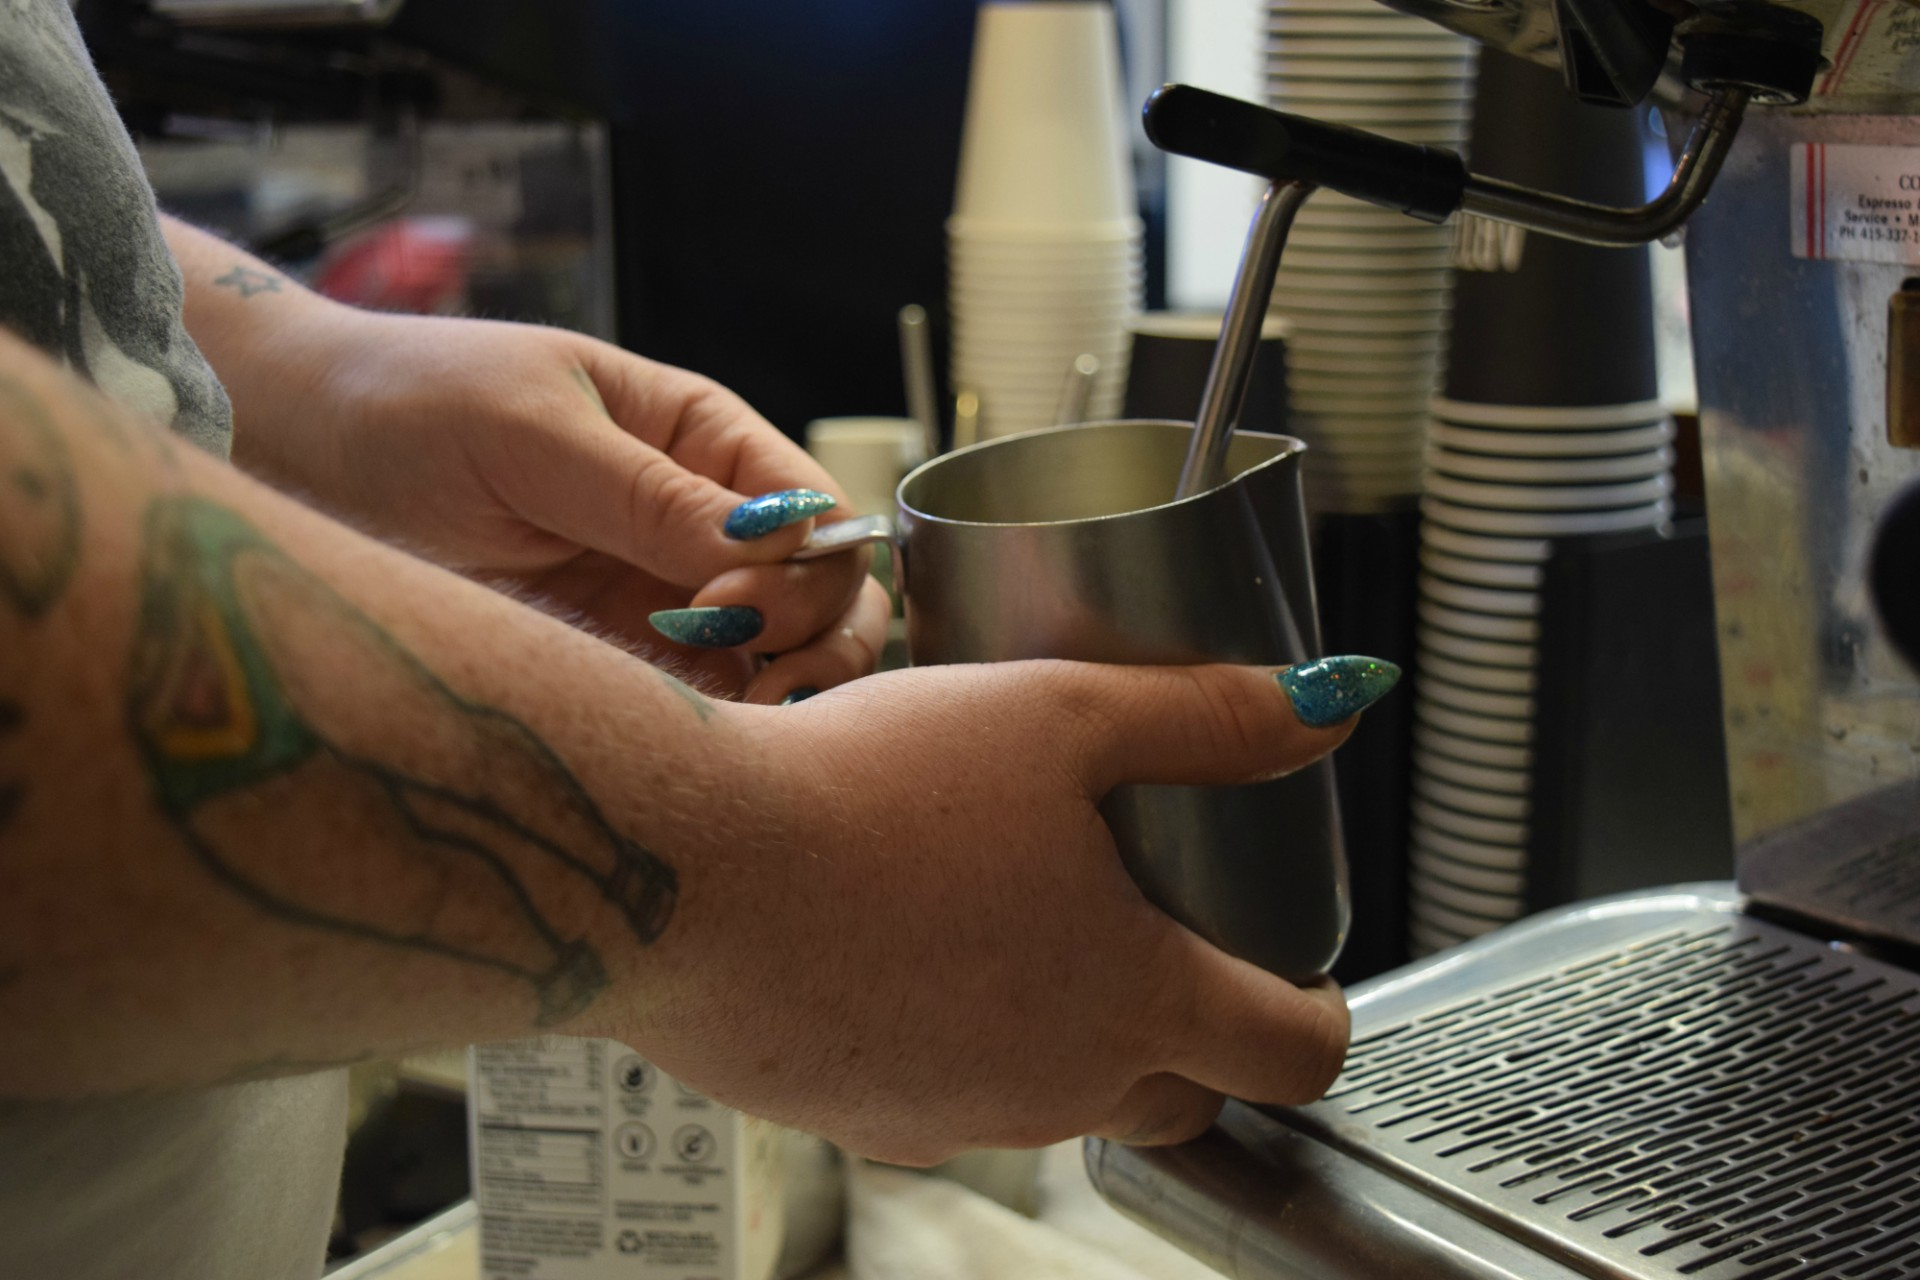 To make the latte, barista Alexis Williams steams milk with a housemade pumpkin syrup.